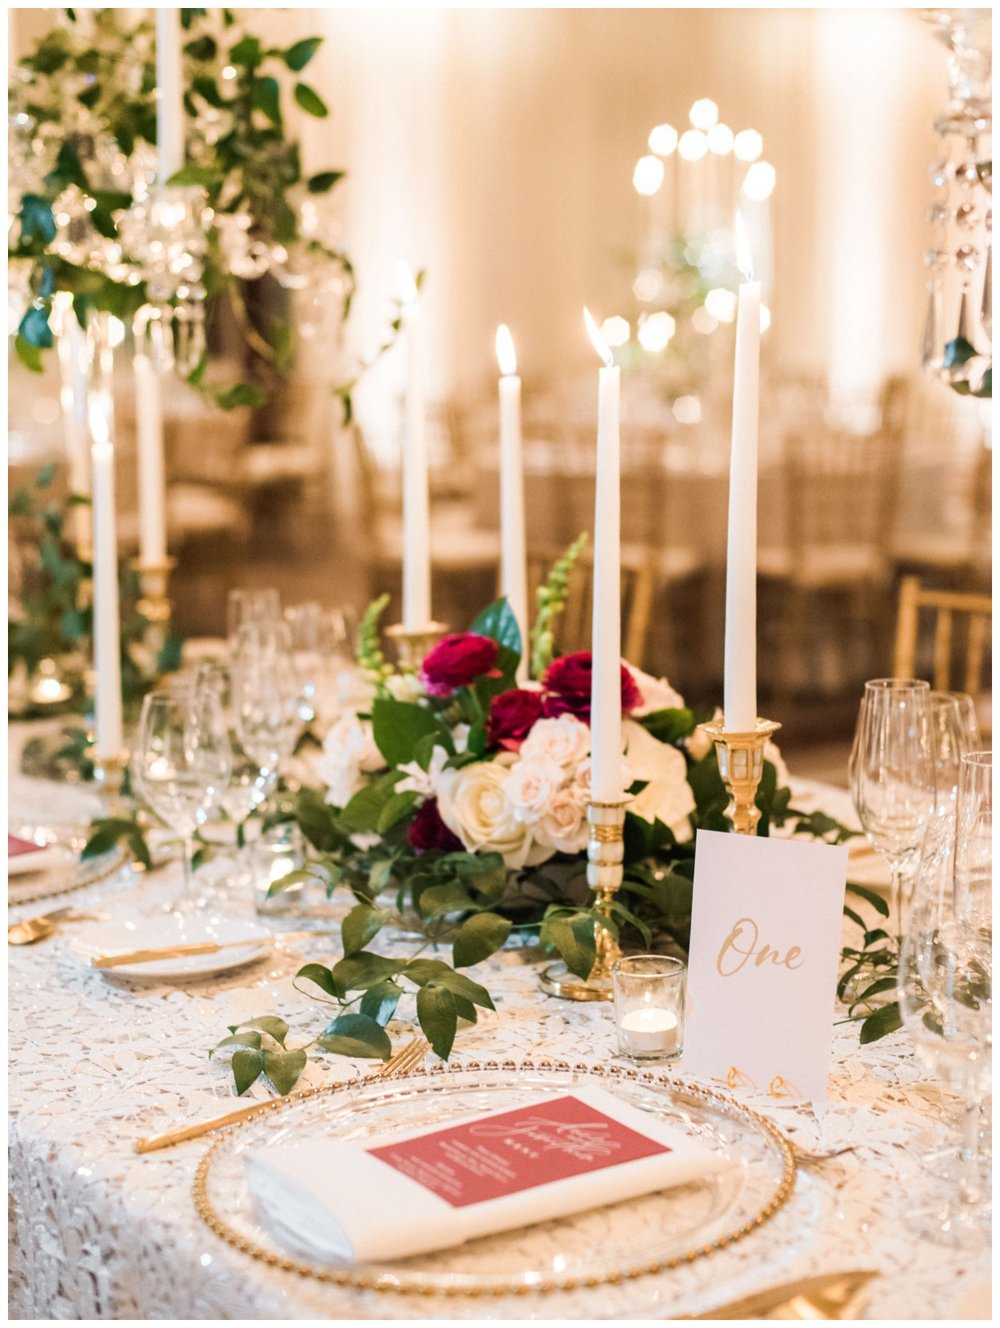 Spring Wedding in Shades of Pink at the Park Hyatt Washington DC by fine art wedding photographer Lissa Ryan Photography candlelit ballroom reception with lace linens